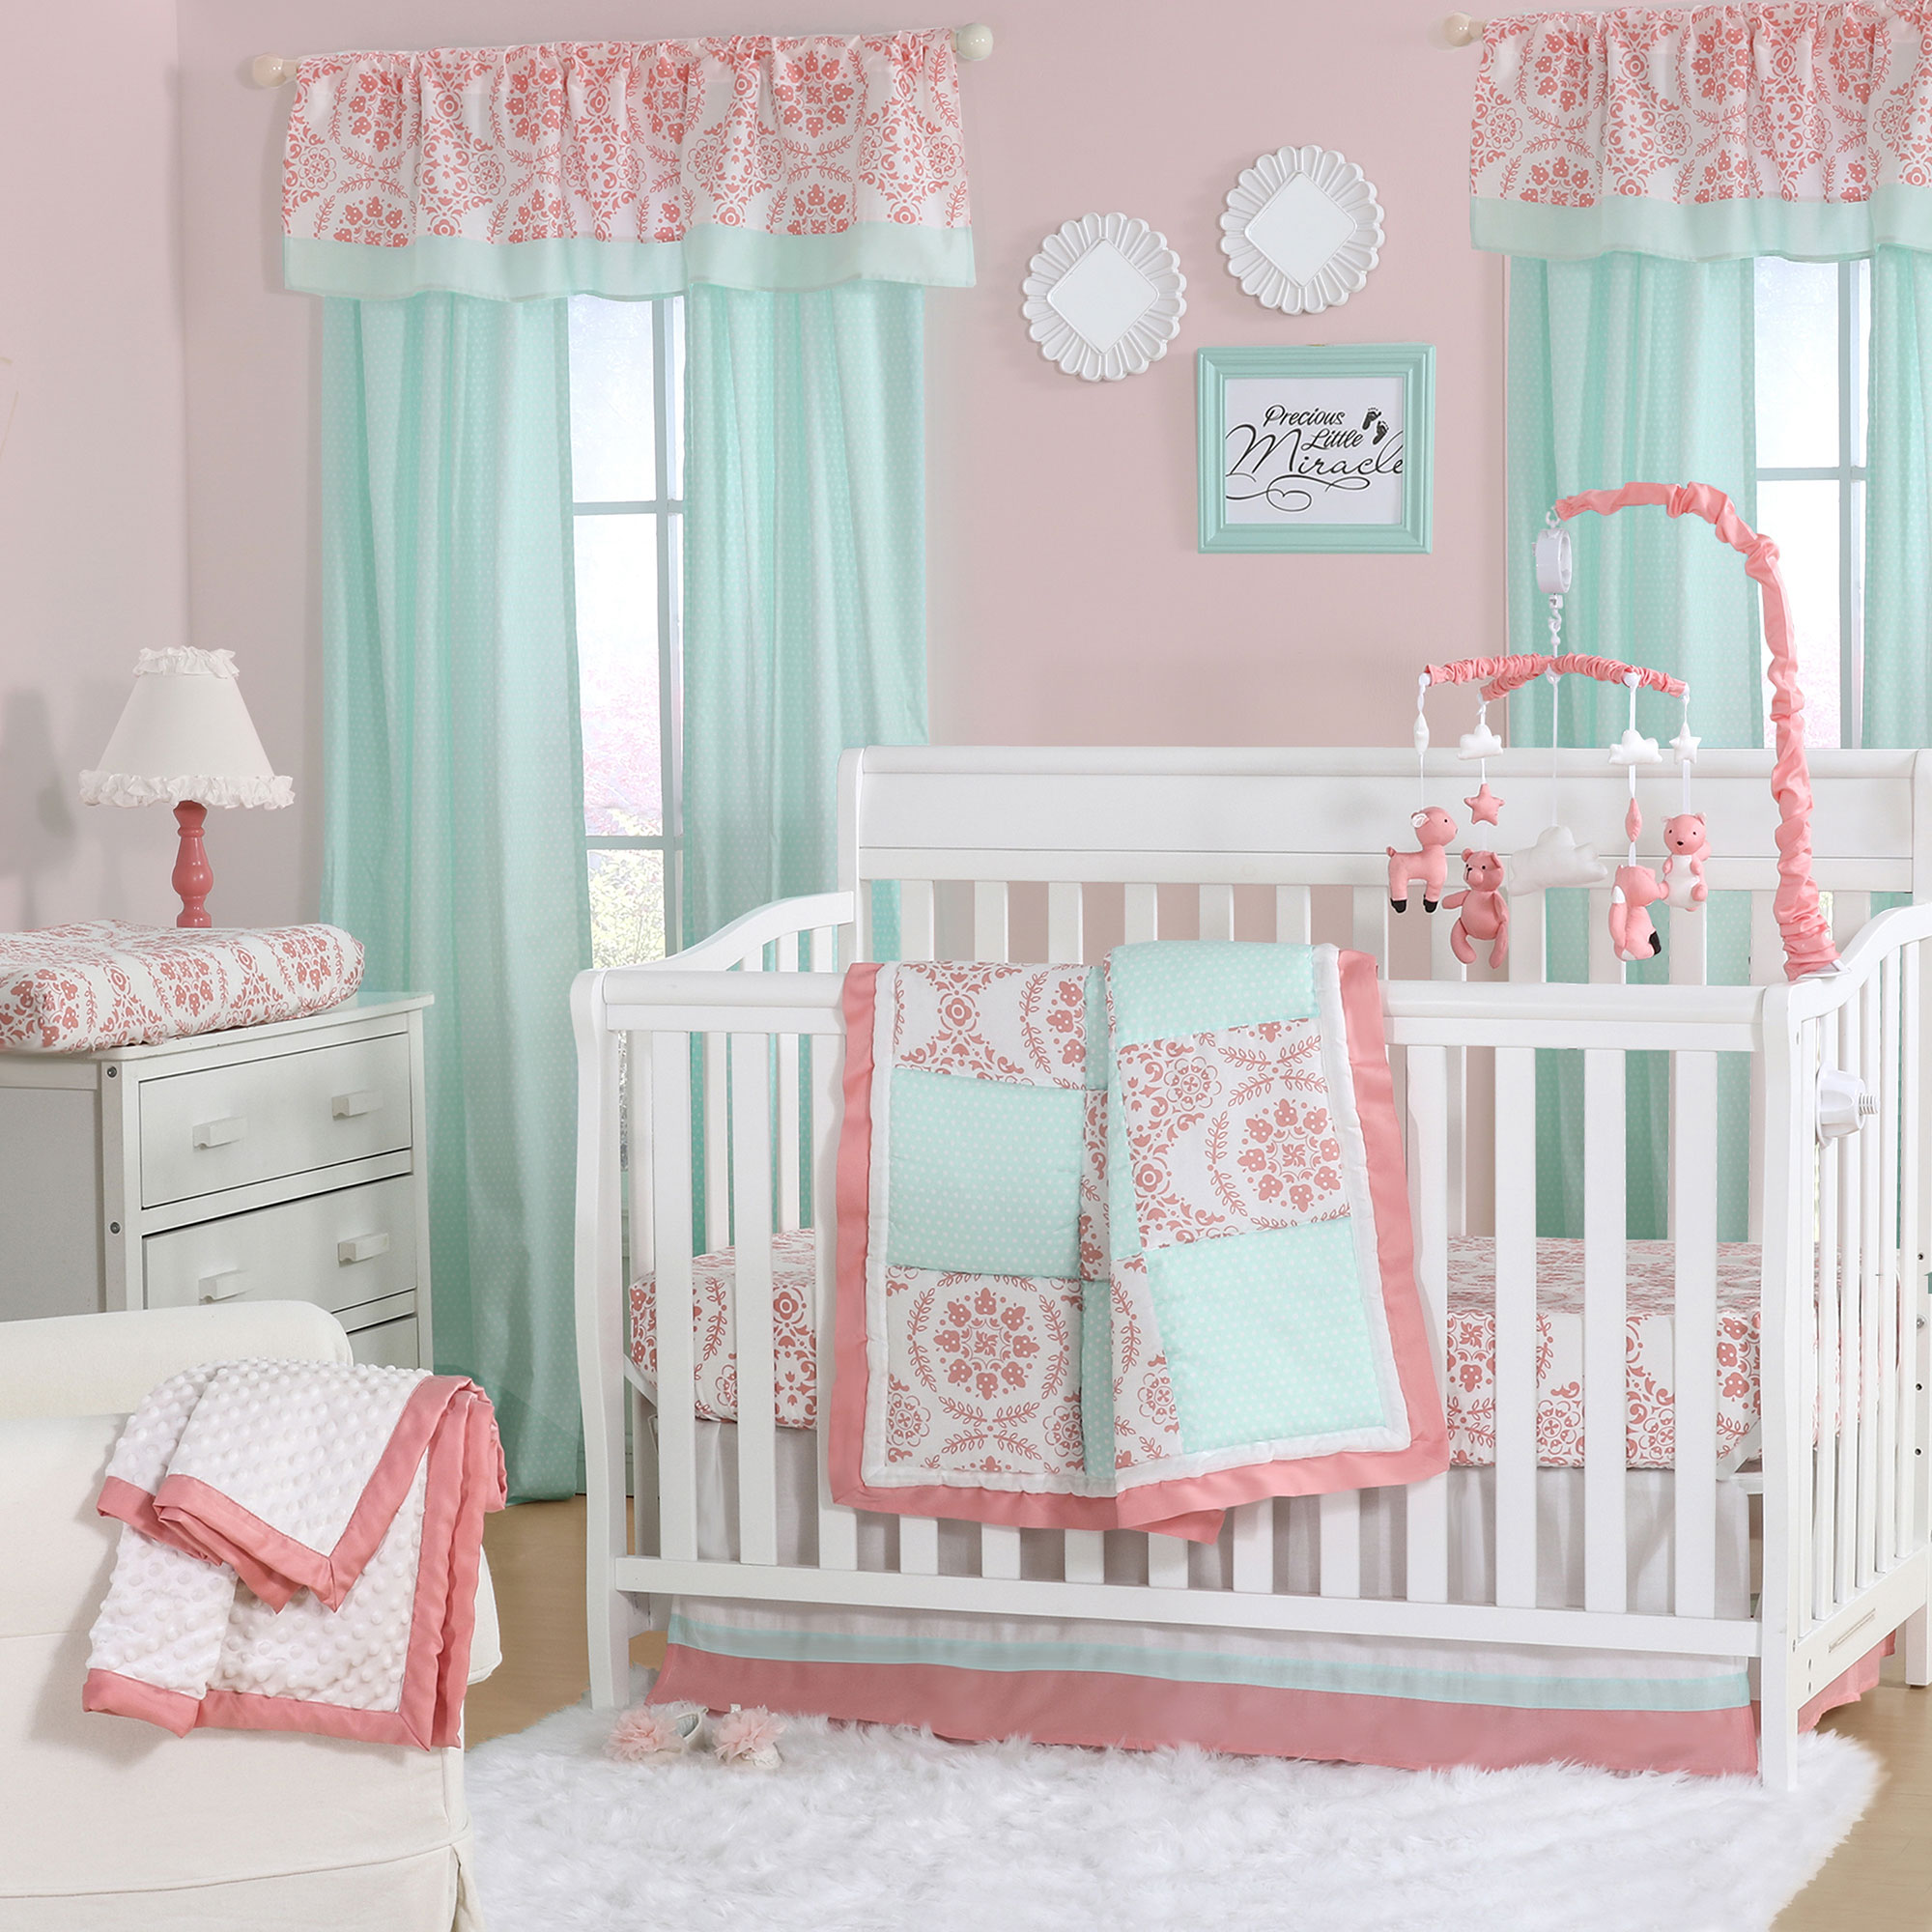 The Peanut Shell 3 Piece Baby Crib Bedding Set - Mint Green Dot and Coral Pink Medallions - 100% Cotton Quilt, Crib Skirt and Sheet